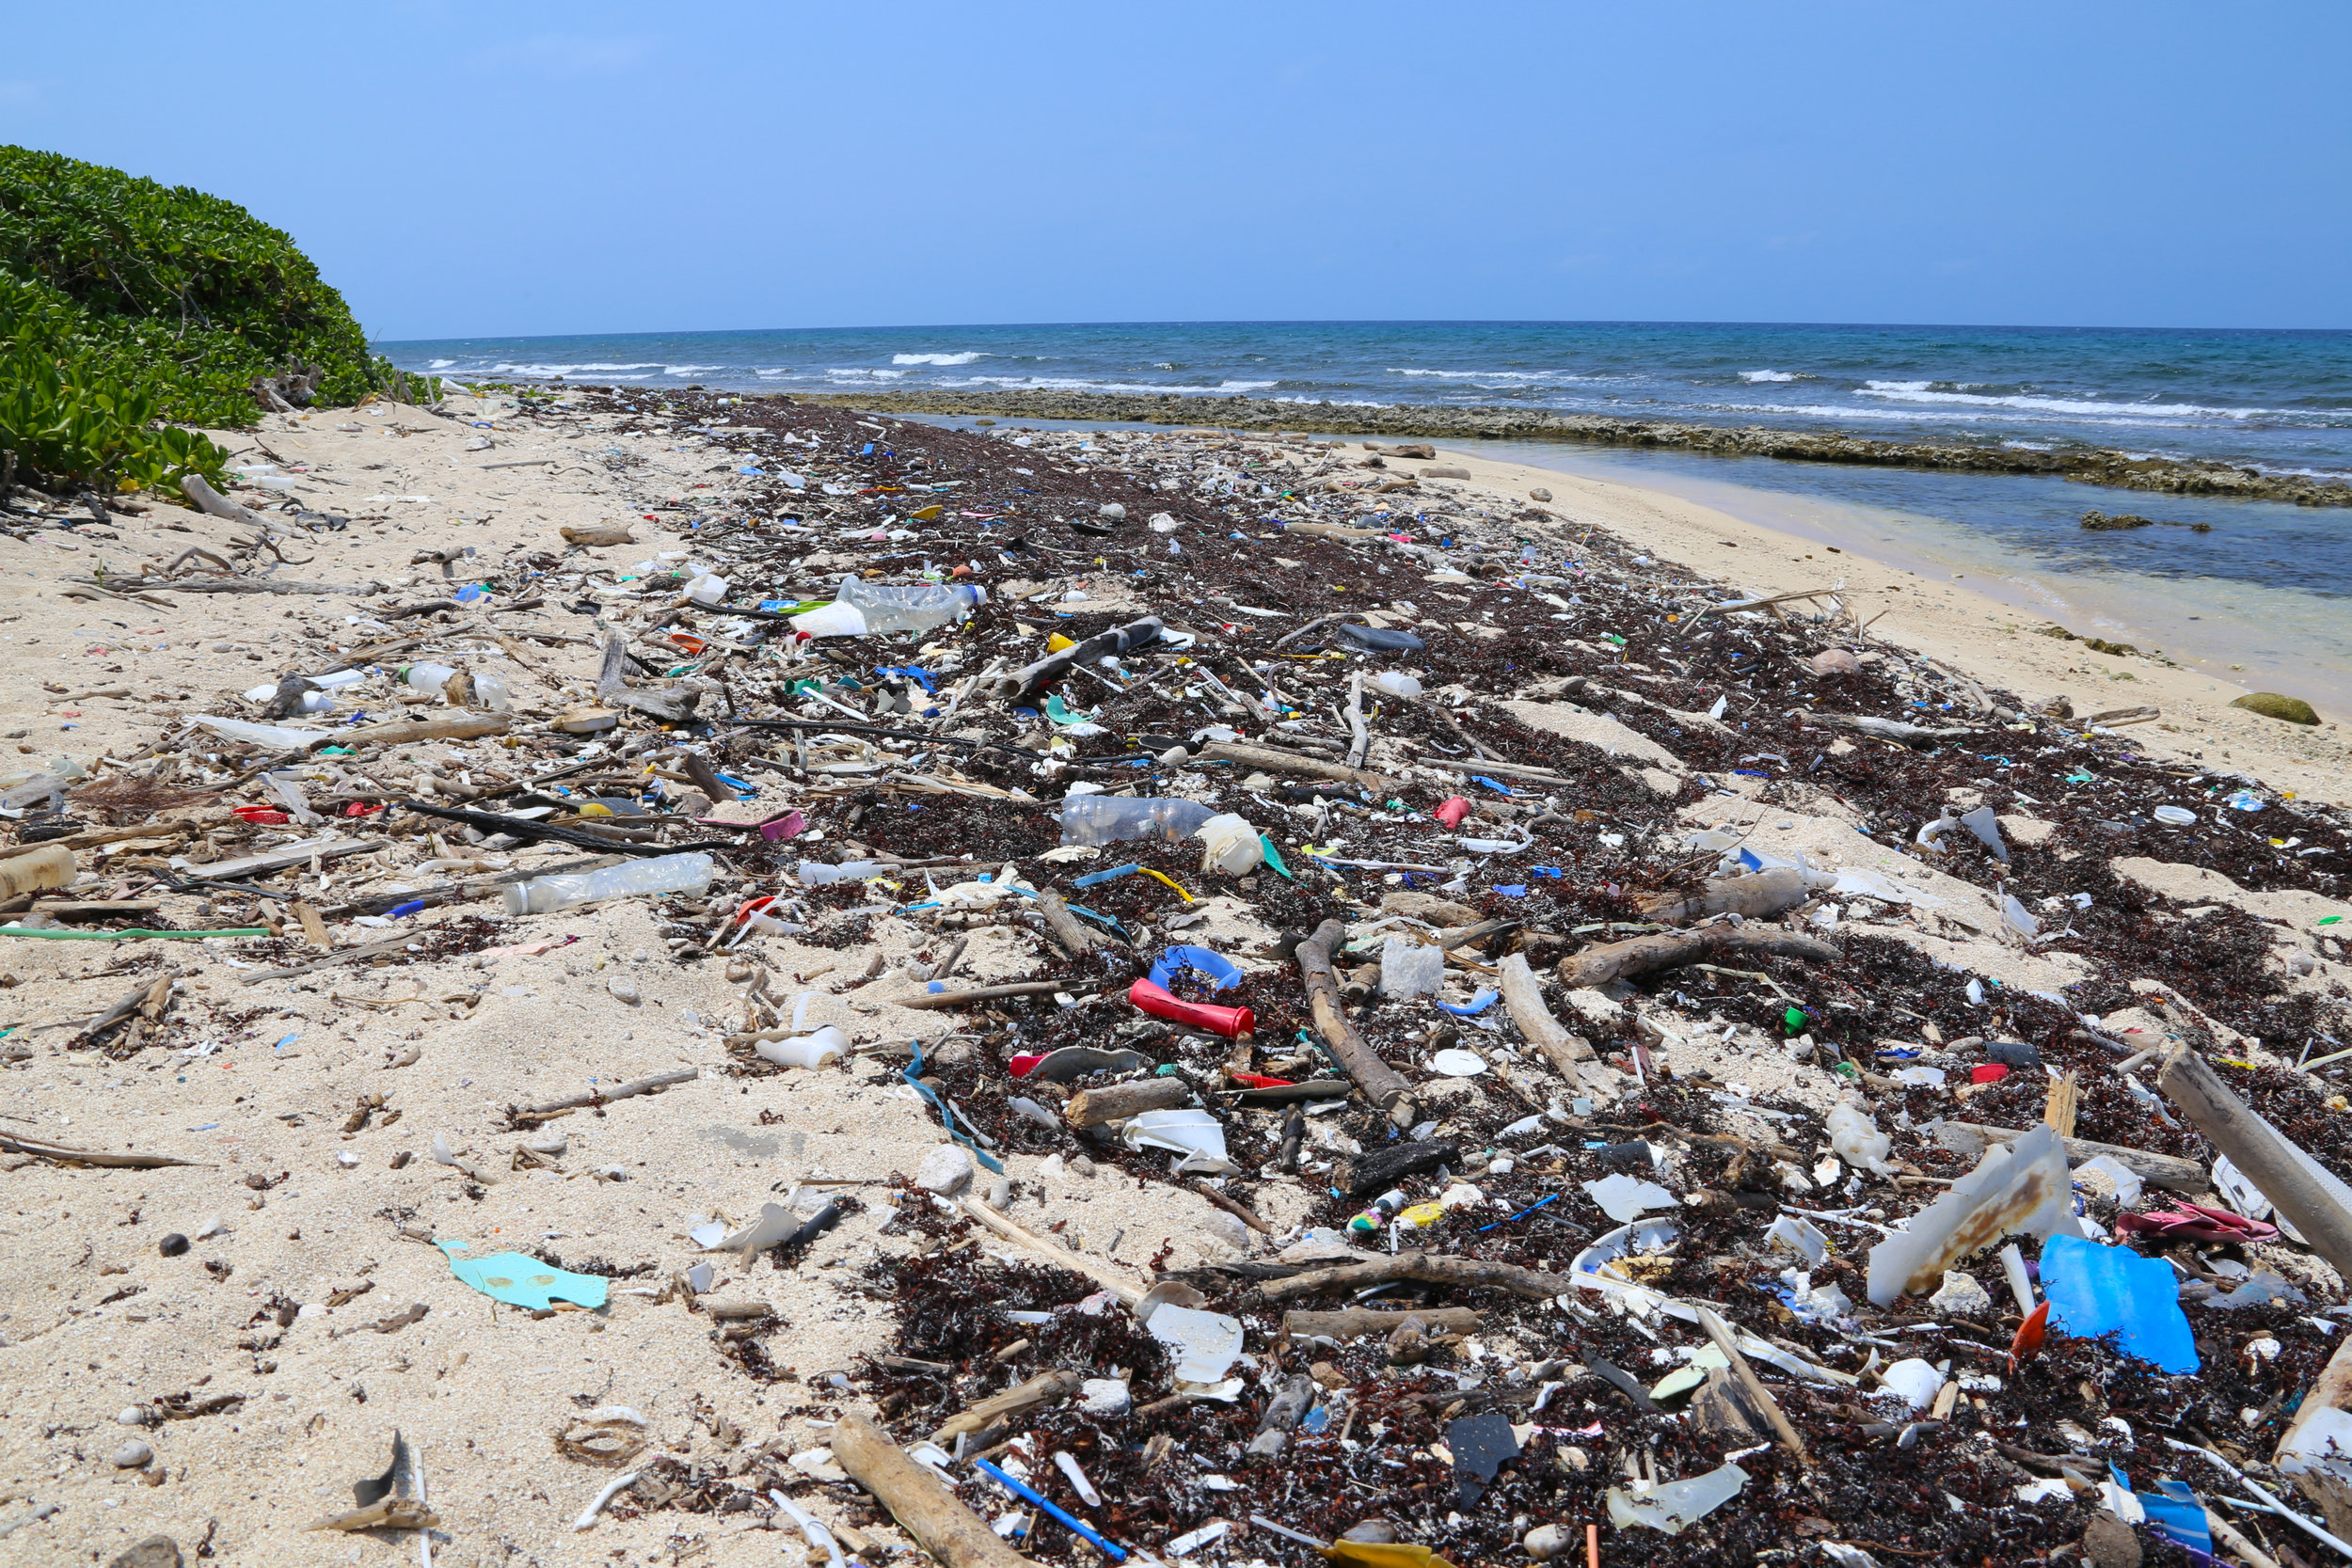 Mixture of trash and decomposing Sargassum at Pumpkin Hill Beach on the island of Utila, Honduras. Image by Kelsie DiPerna. All rights reserved.